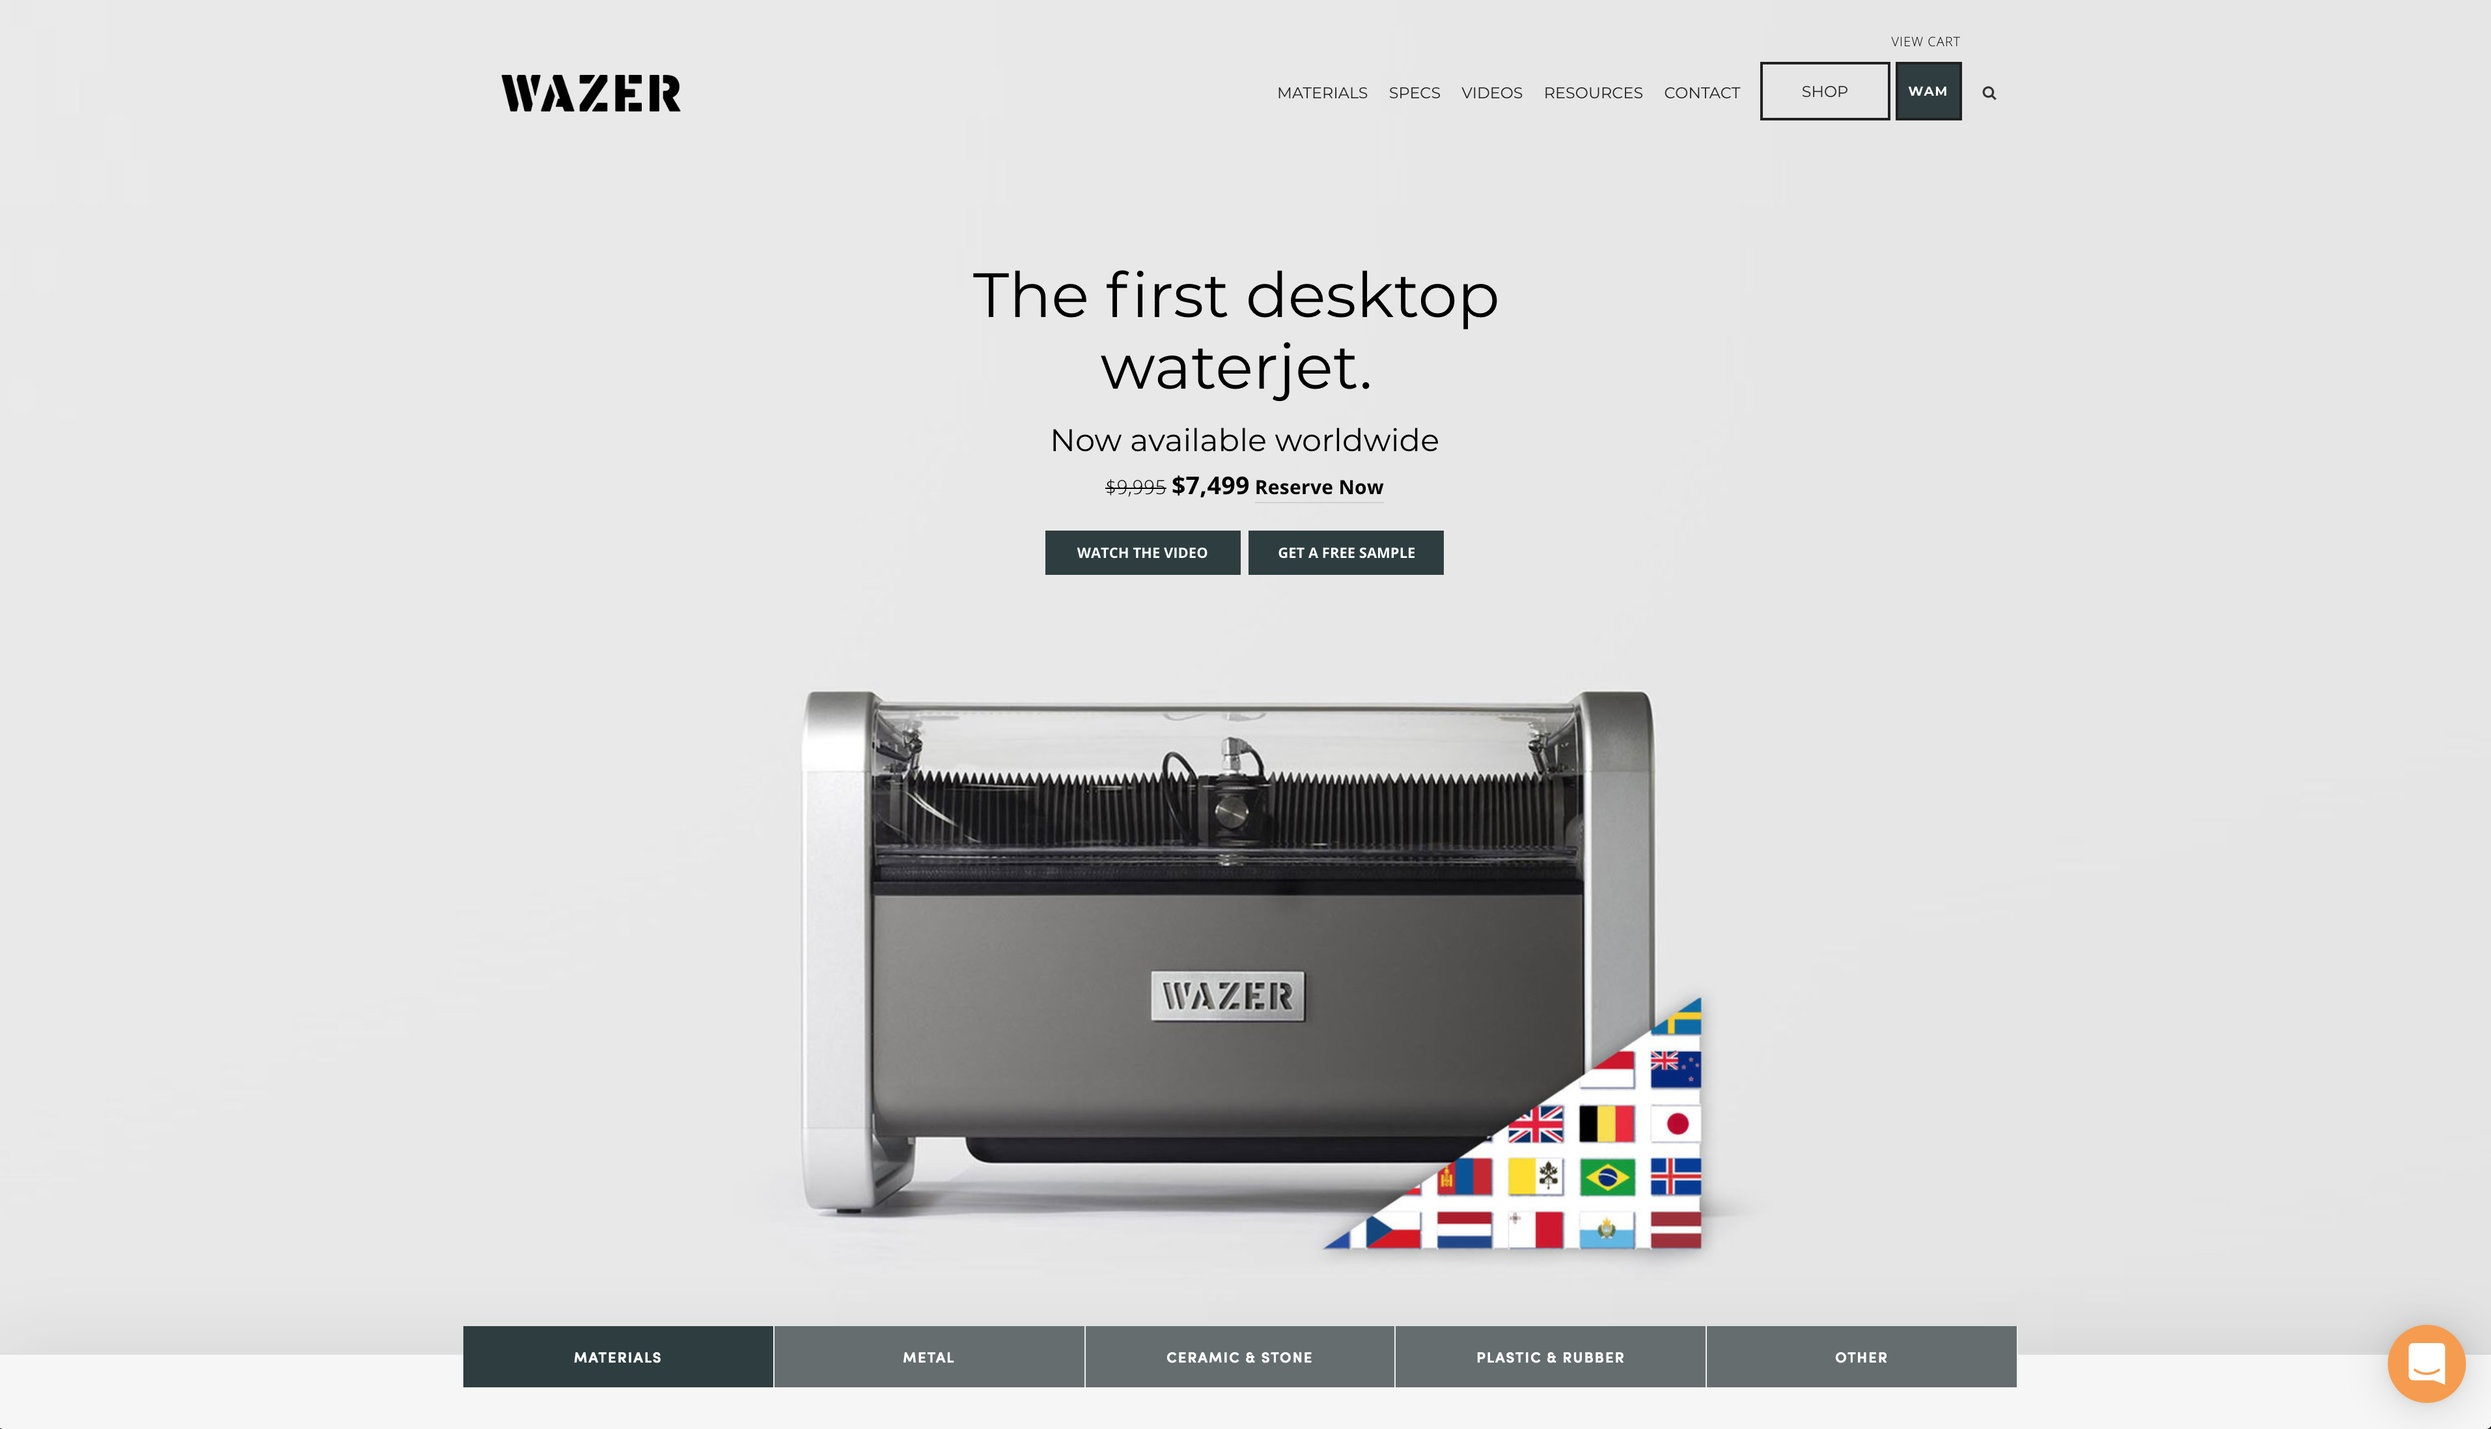 WAZER | The first desktop waterjet